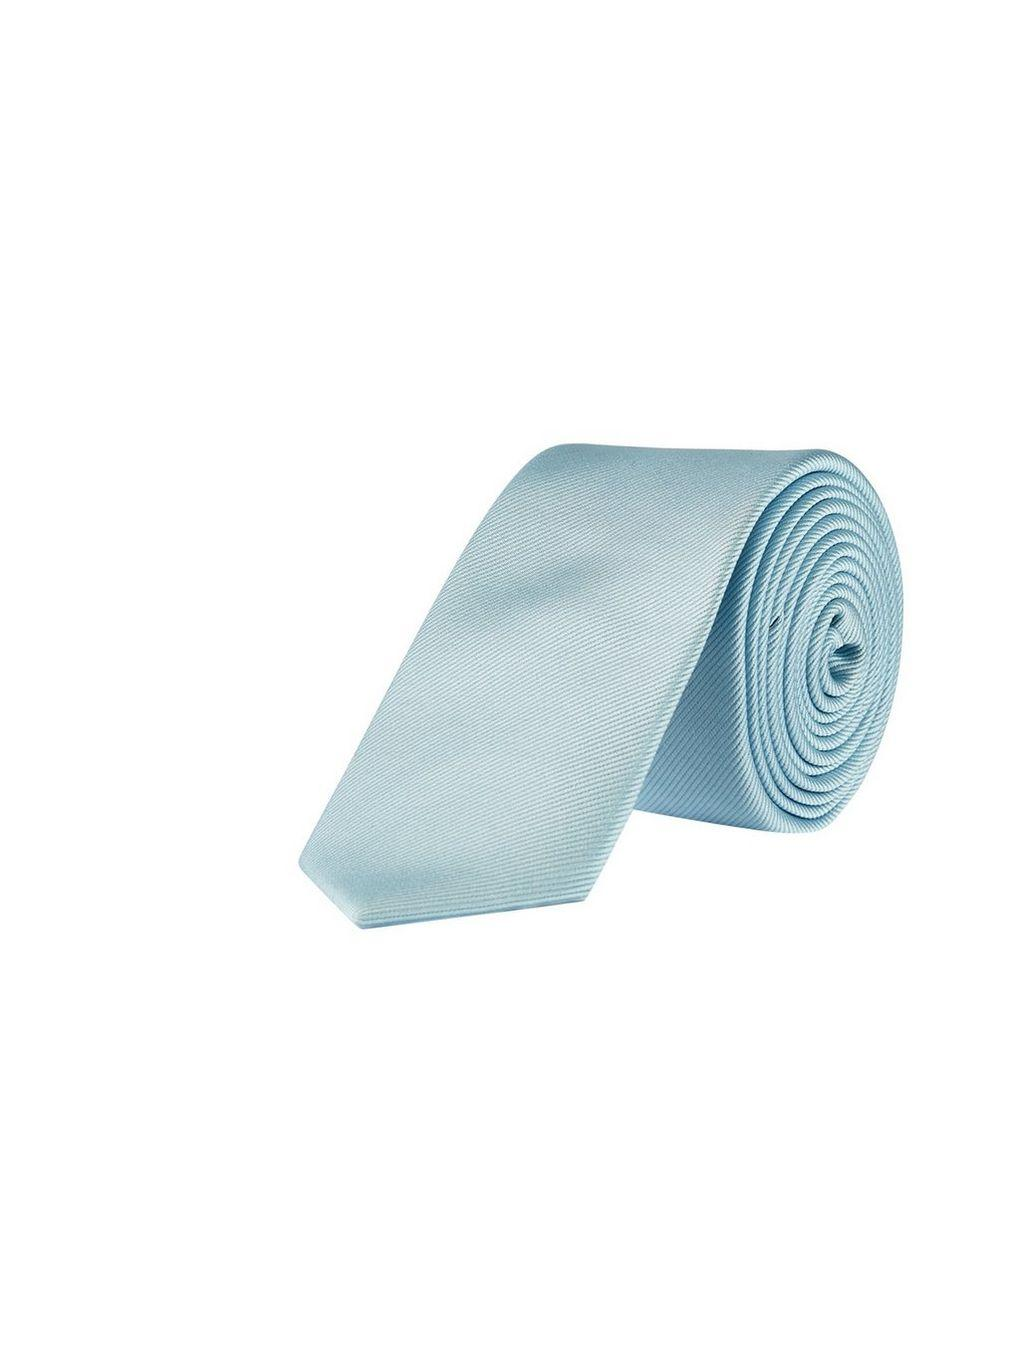 d7dd0f85e02a Burton Mid Blue Tie And Matching Pocket Square Set in Blue for Men - Lyst